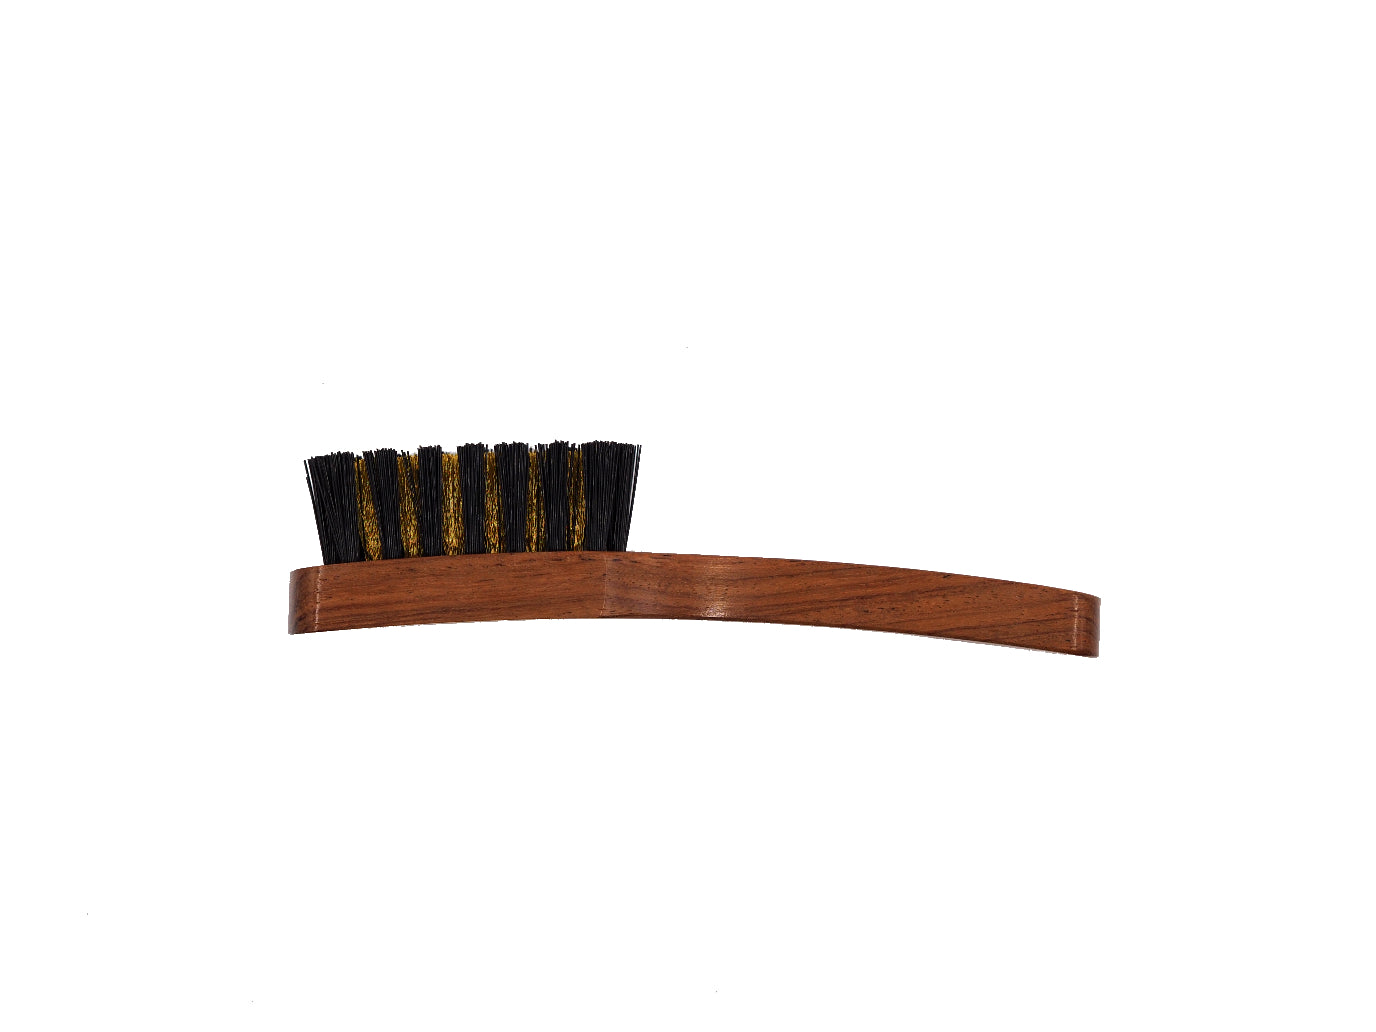 Gold Medal Bubinga Handle Brass and Bristle Suede Brush